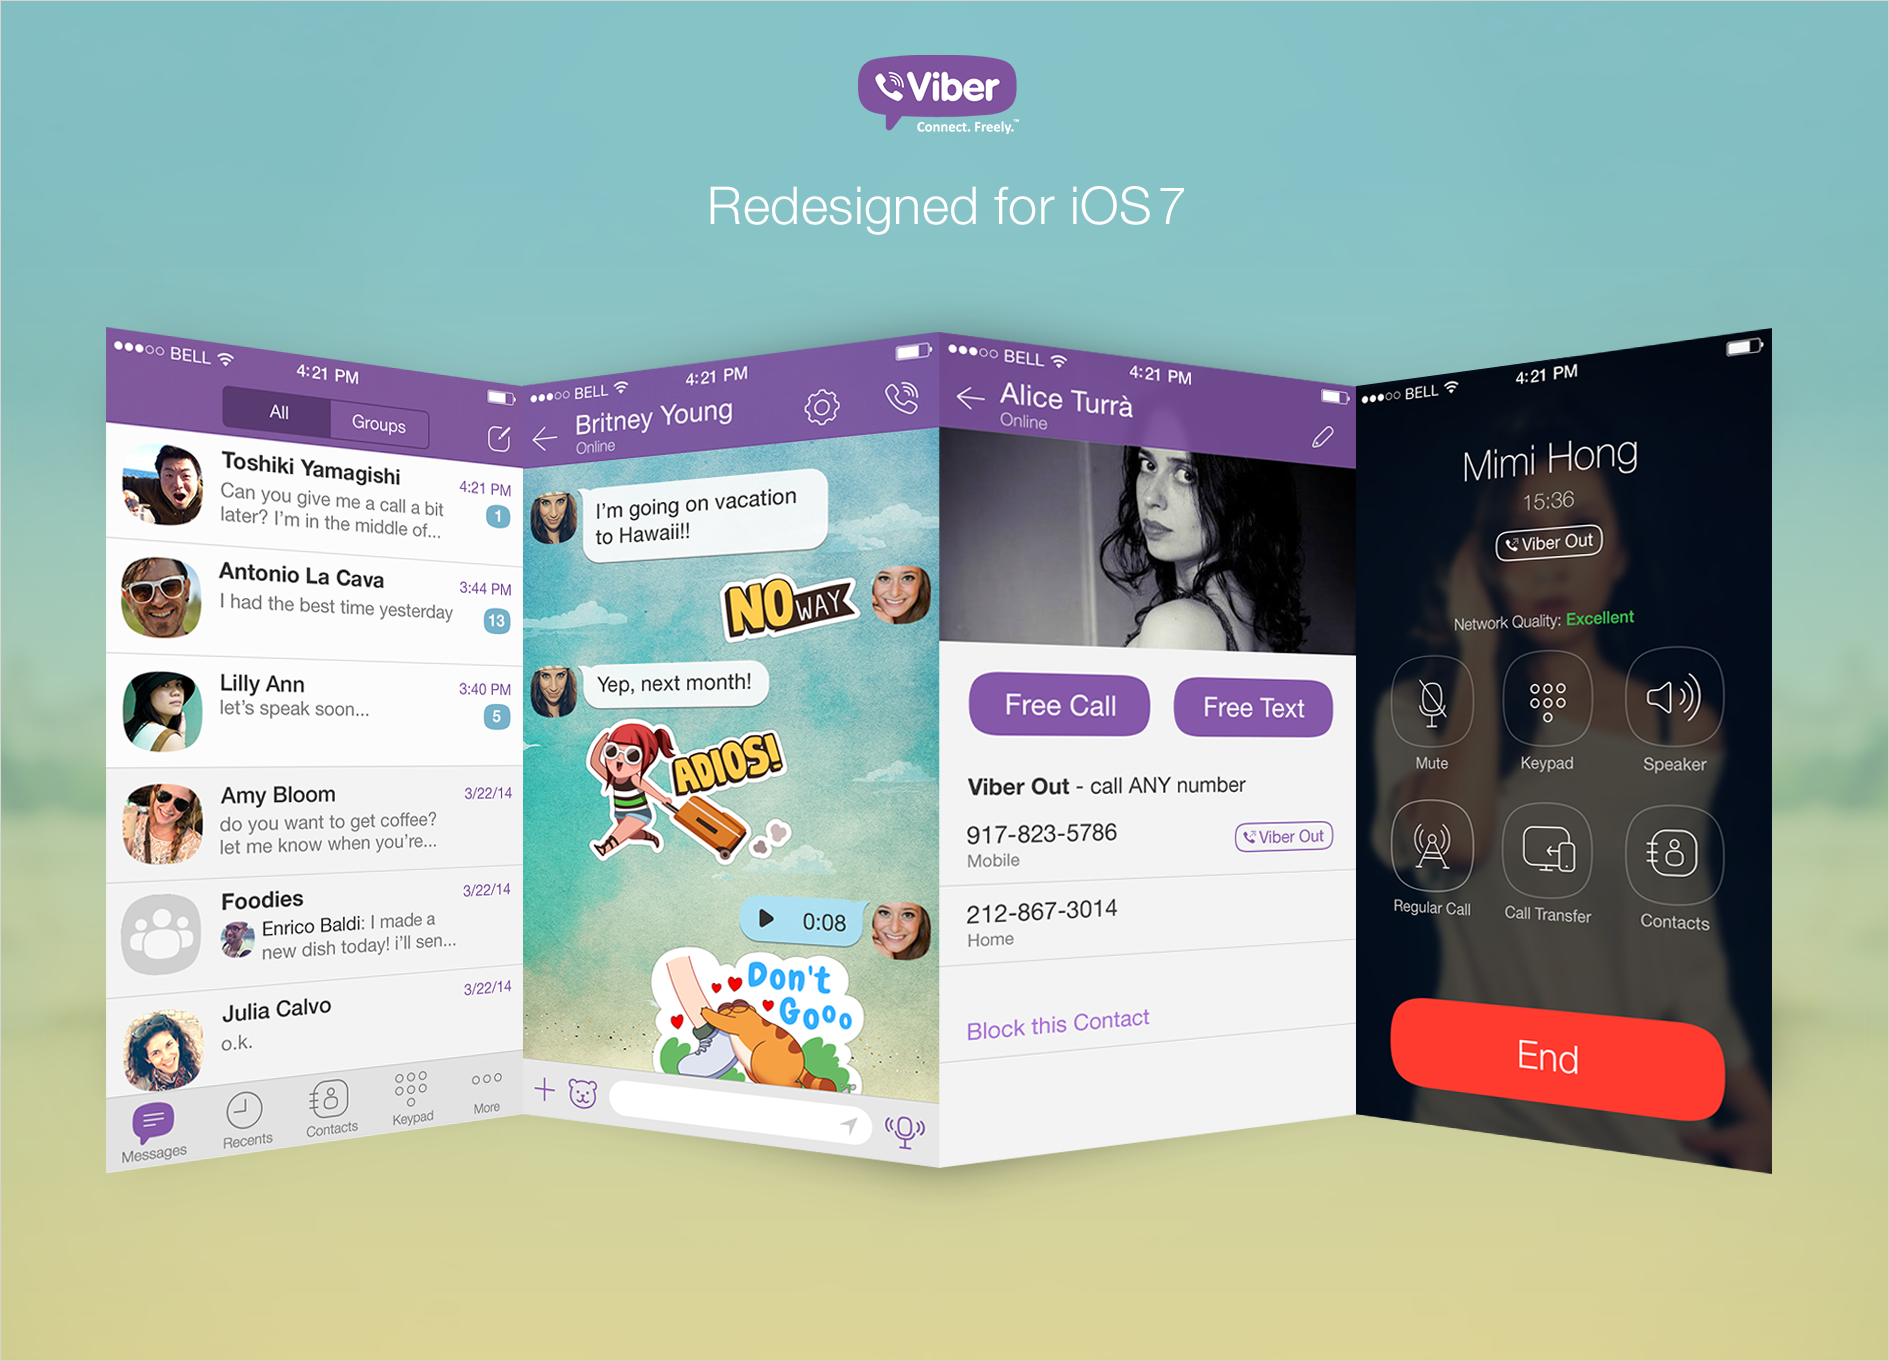 VIBER APP UPDATE: Viber Now Available on Blackberry 10 and Redesigns Its Look for iPhone